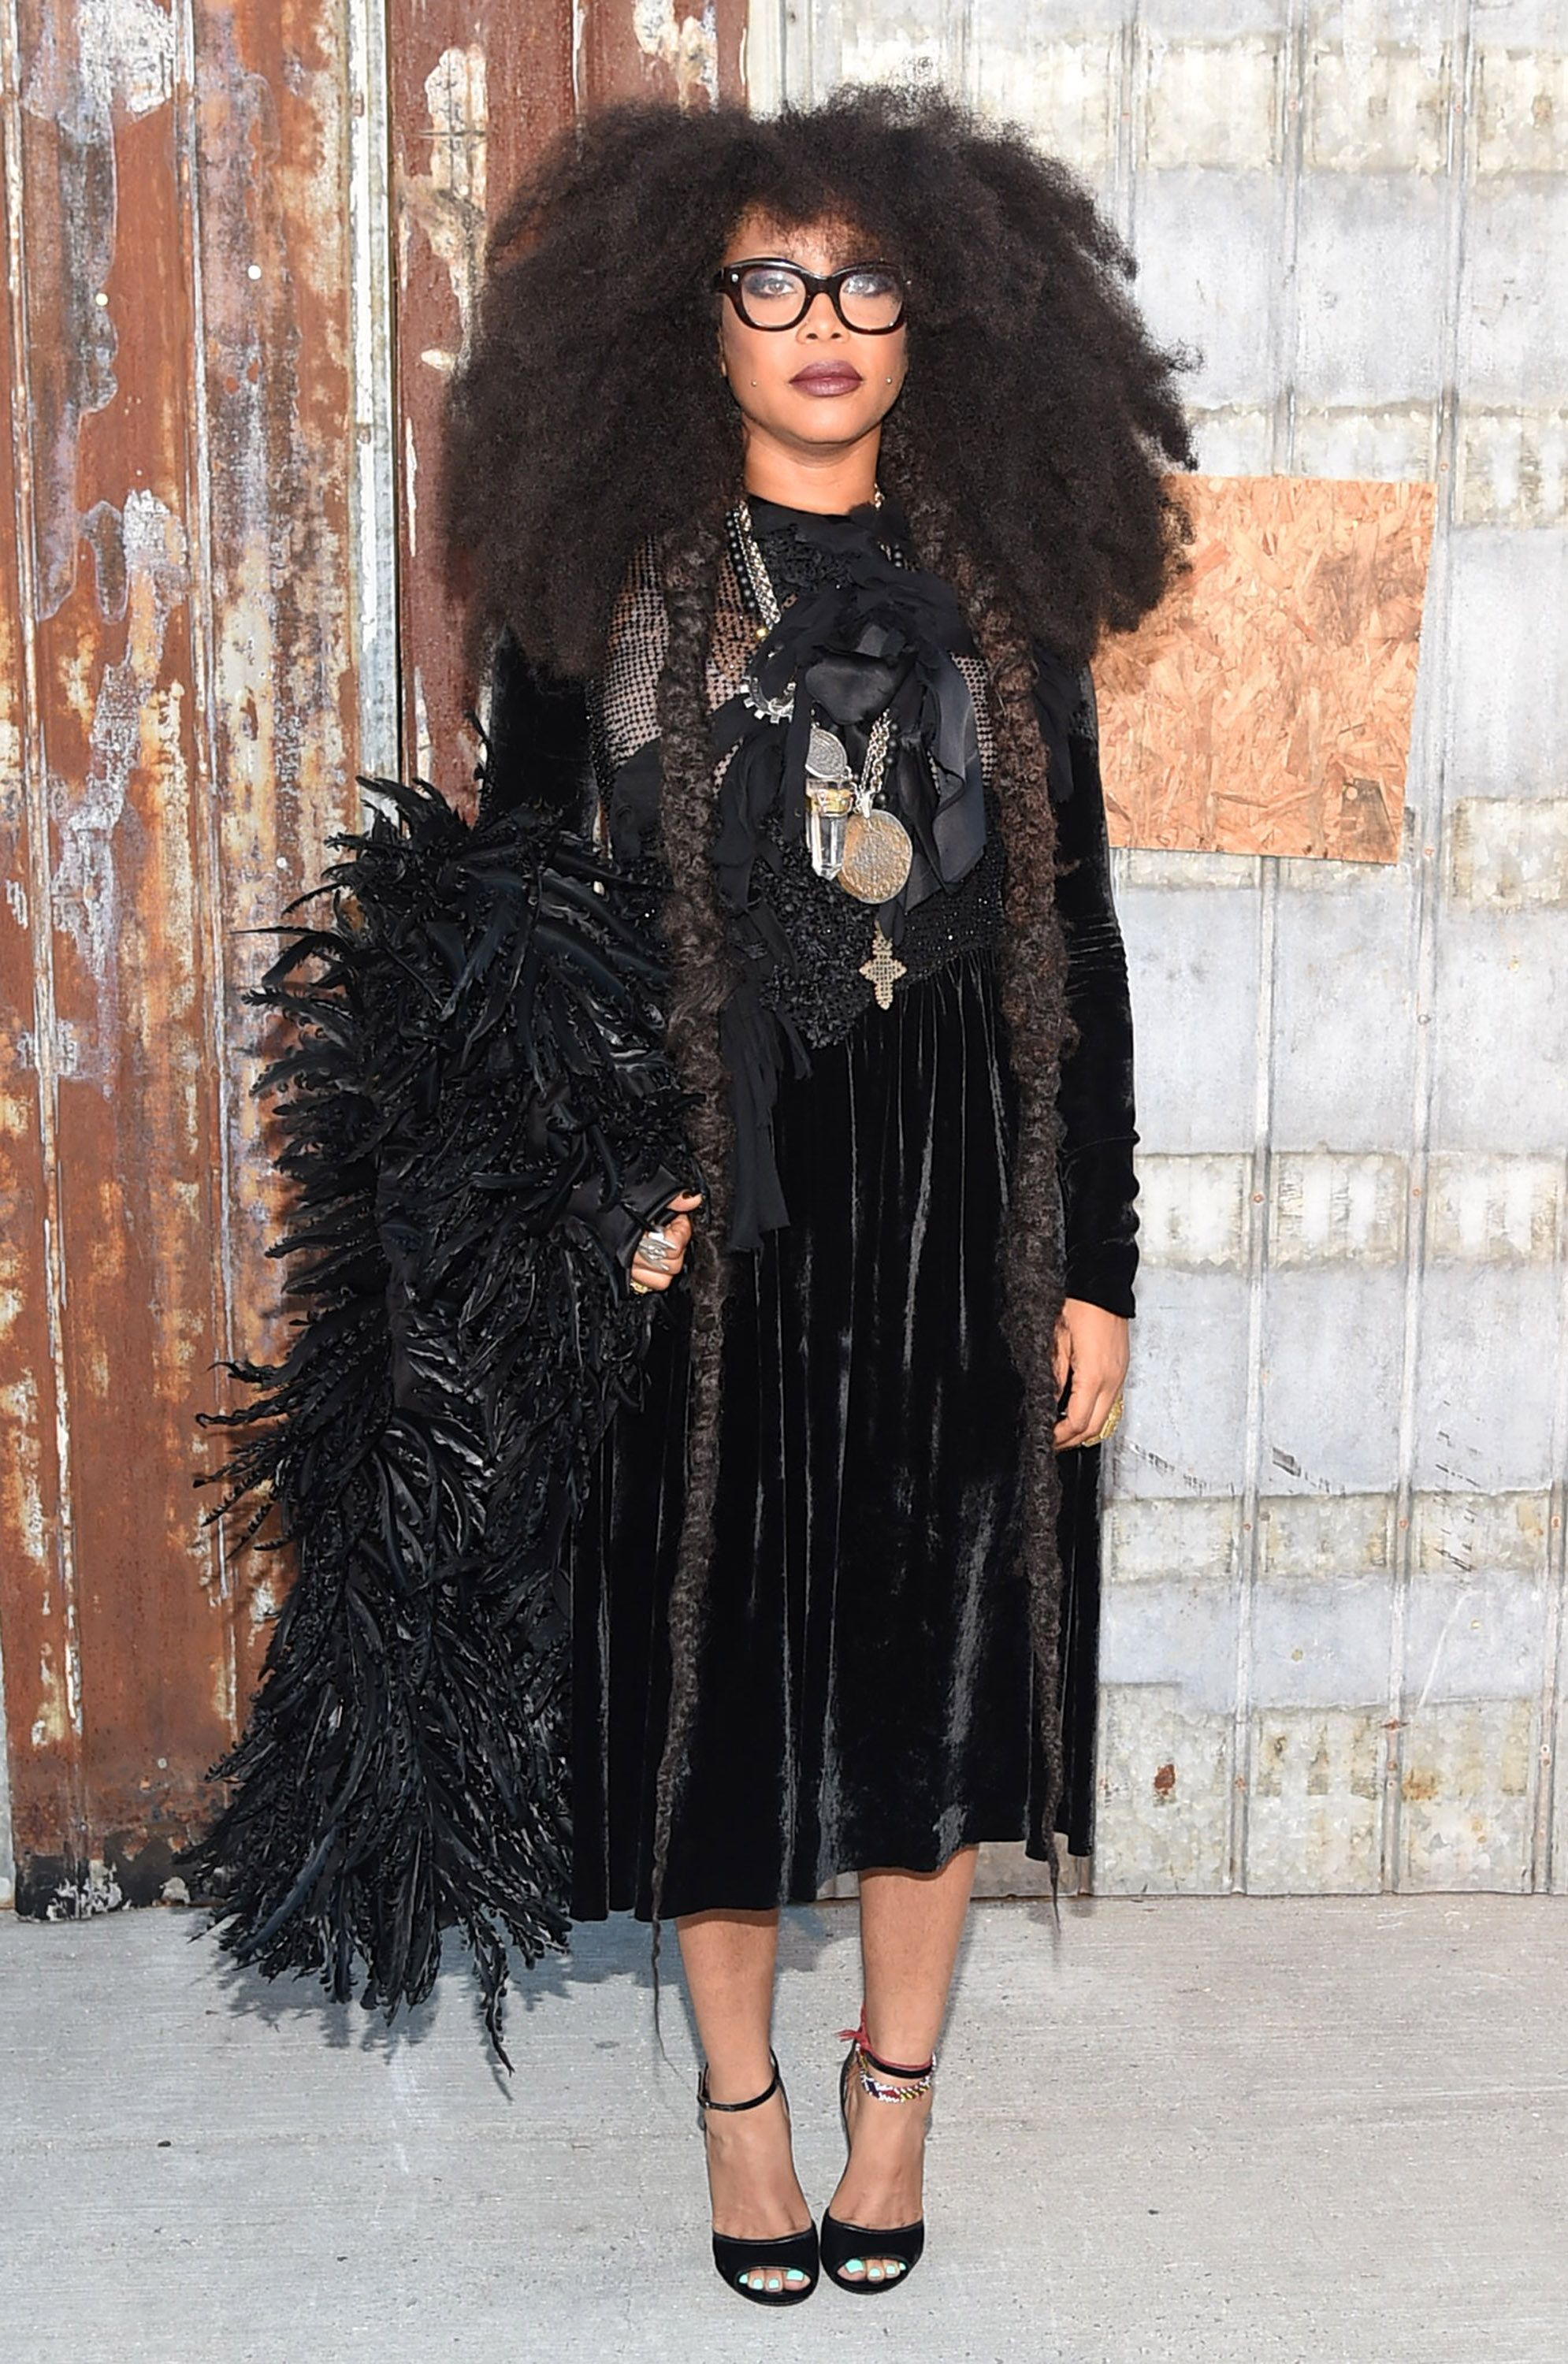 Erykah Badu at the Givenchy fashion show on September 11, 2015 in New York. | Photo: Getty Images